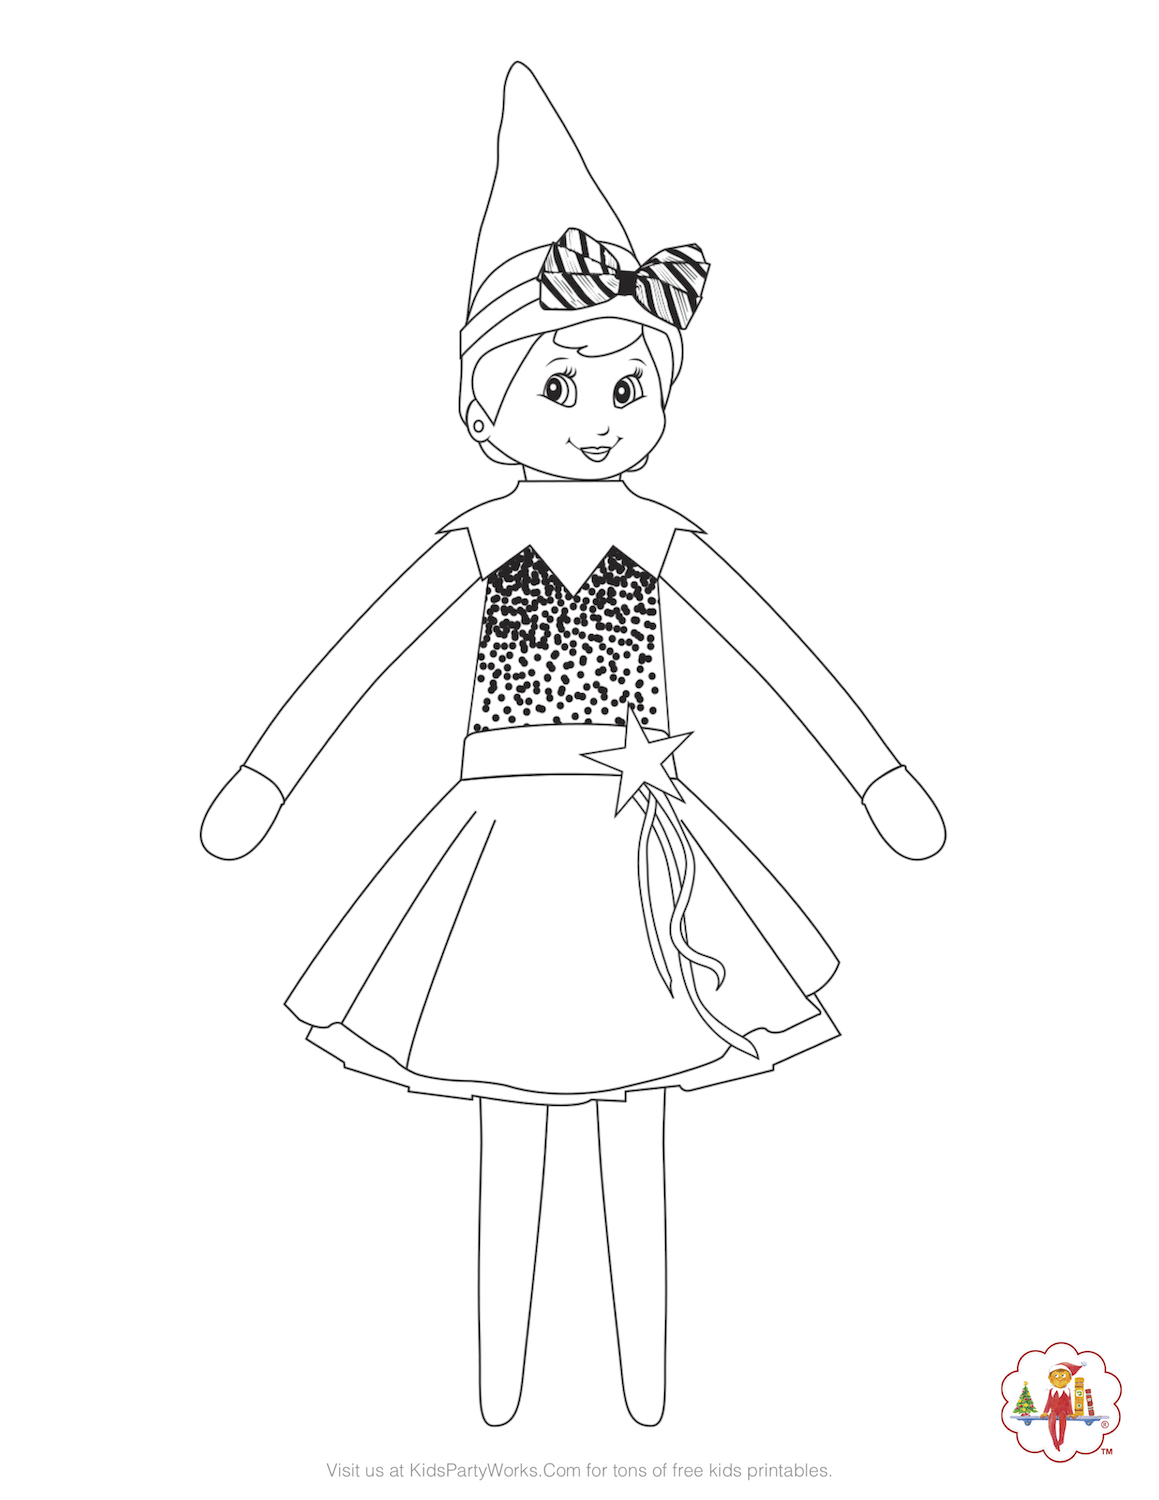 Girl Elf On The Shelf Coloring Page She S Ready For The Christmas Season In Her Christmas Coloring Elf Girl Page Ready Season Shelf Shes Girl Elf In 2020